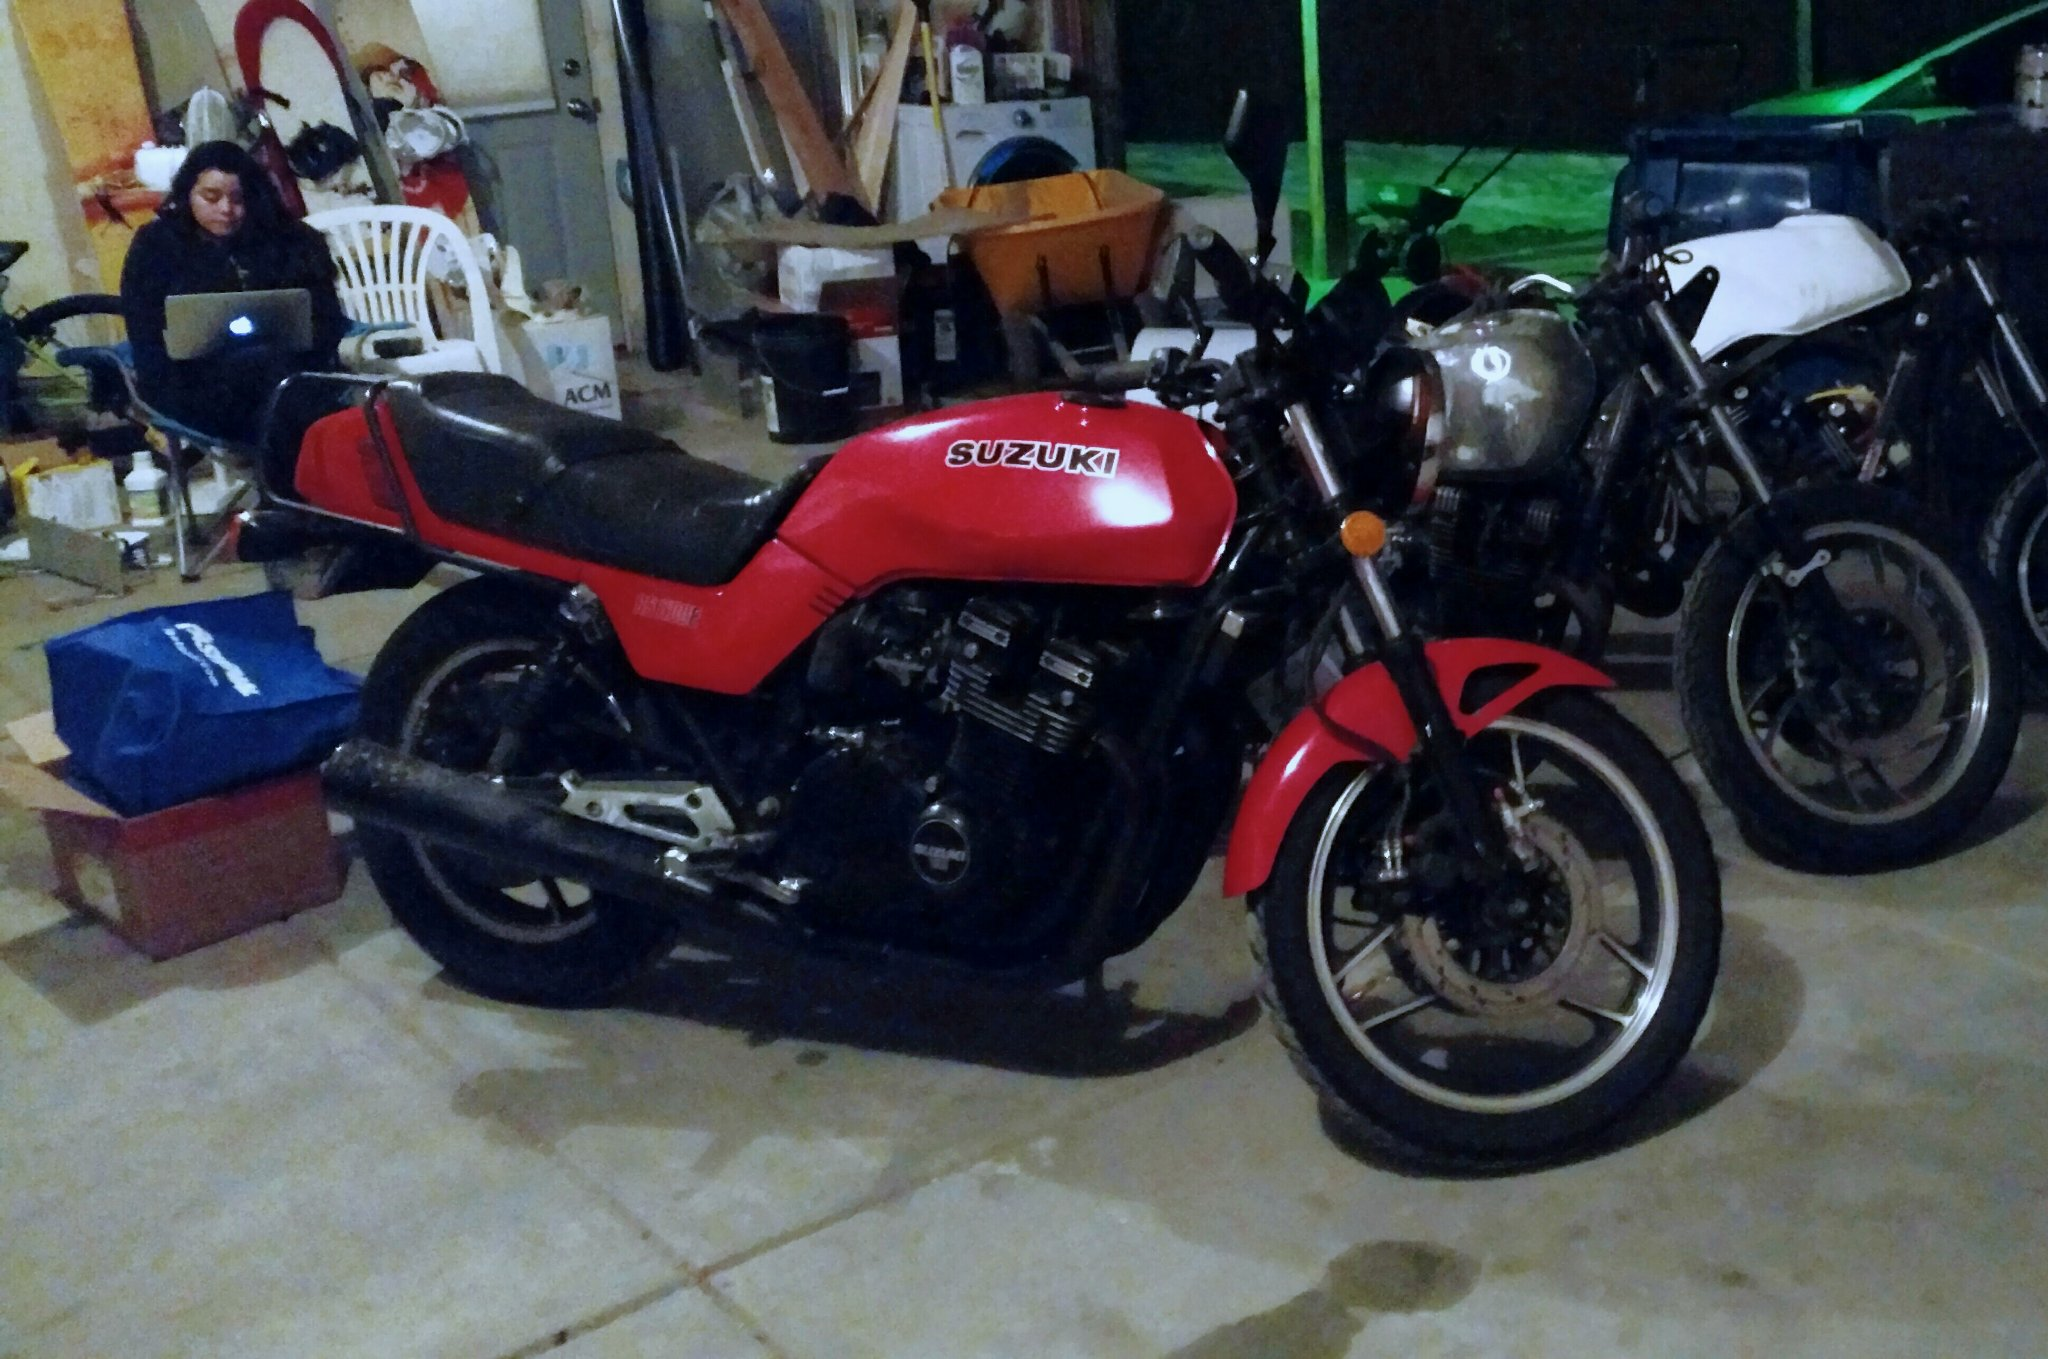 83 Gs1100 Before